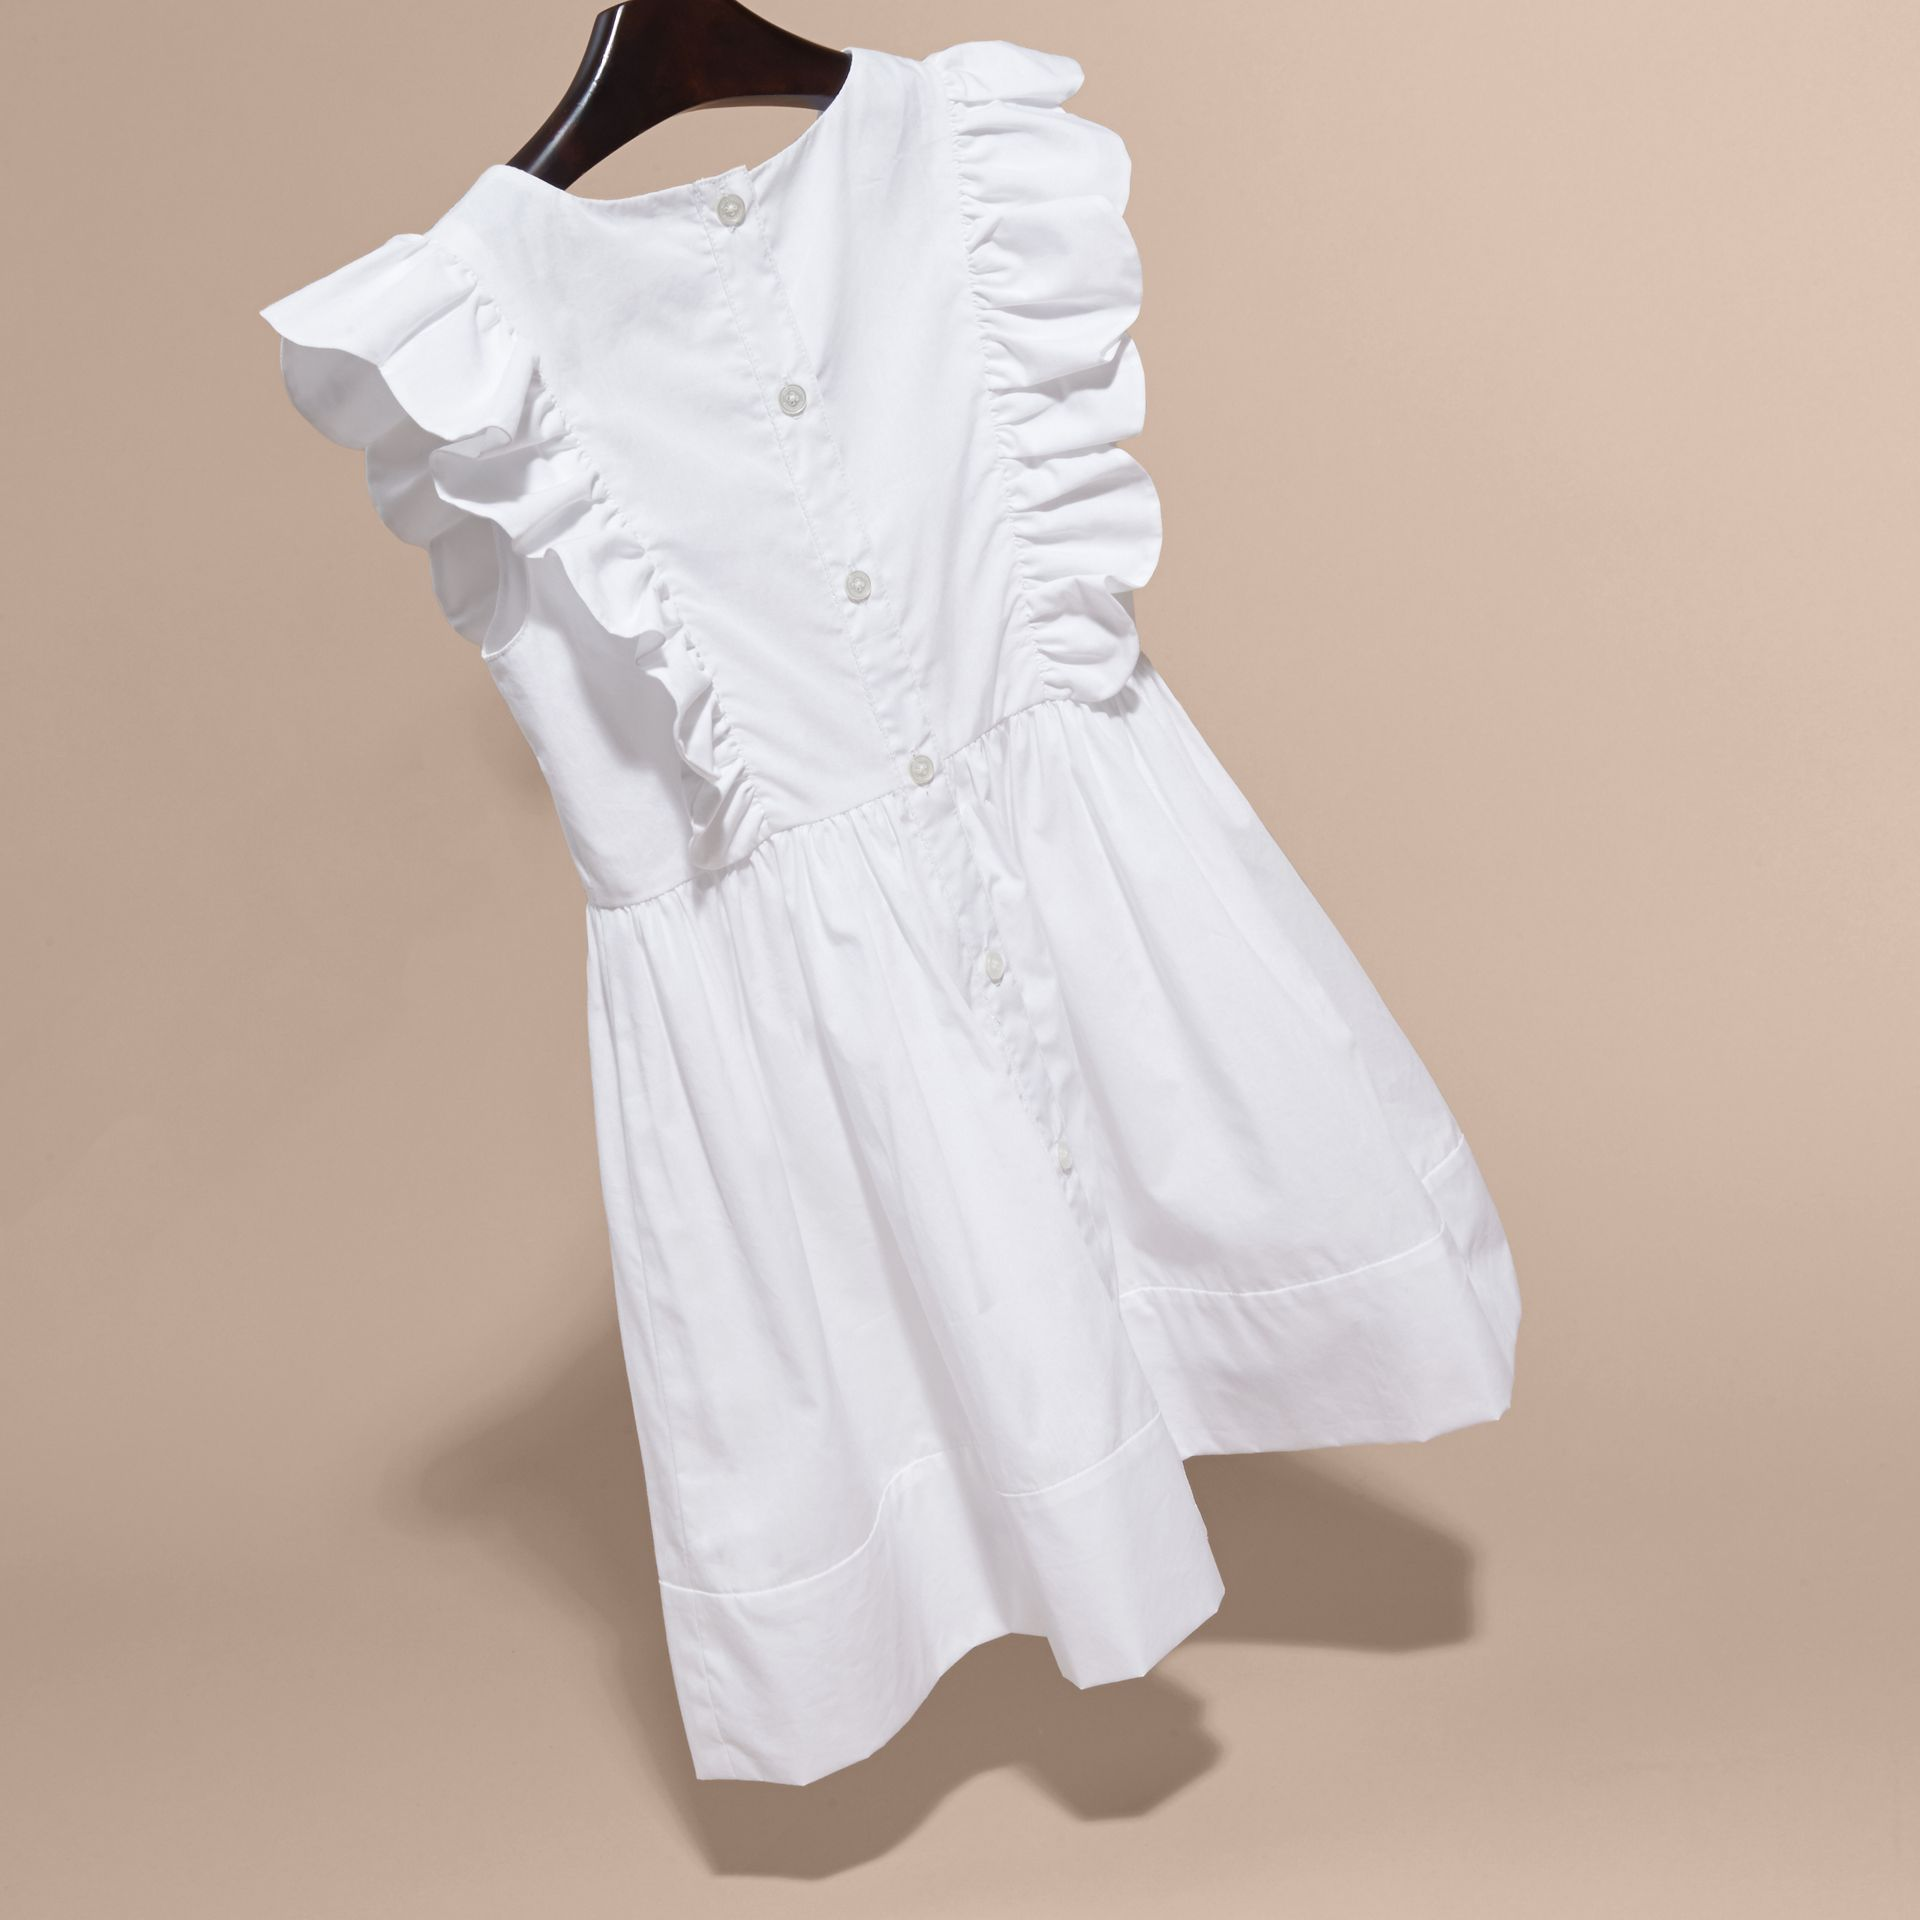 Ruffle and Pleat Detail Cotton Dress in White | Burberry - gallery image 4